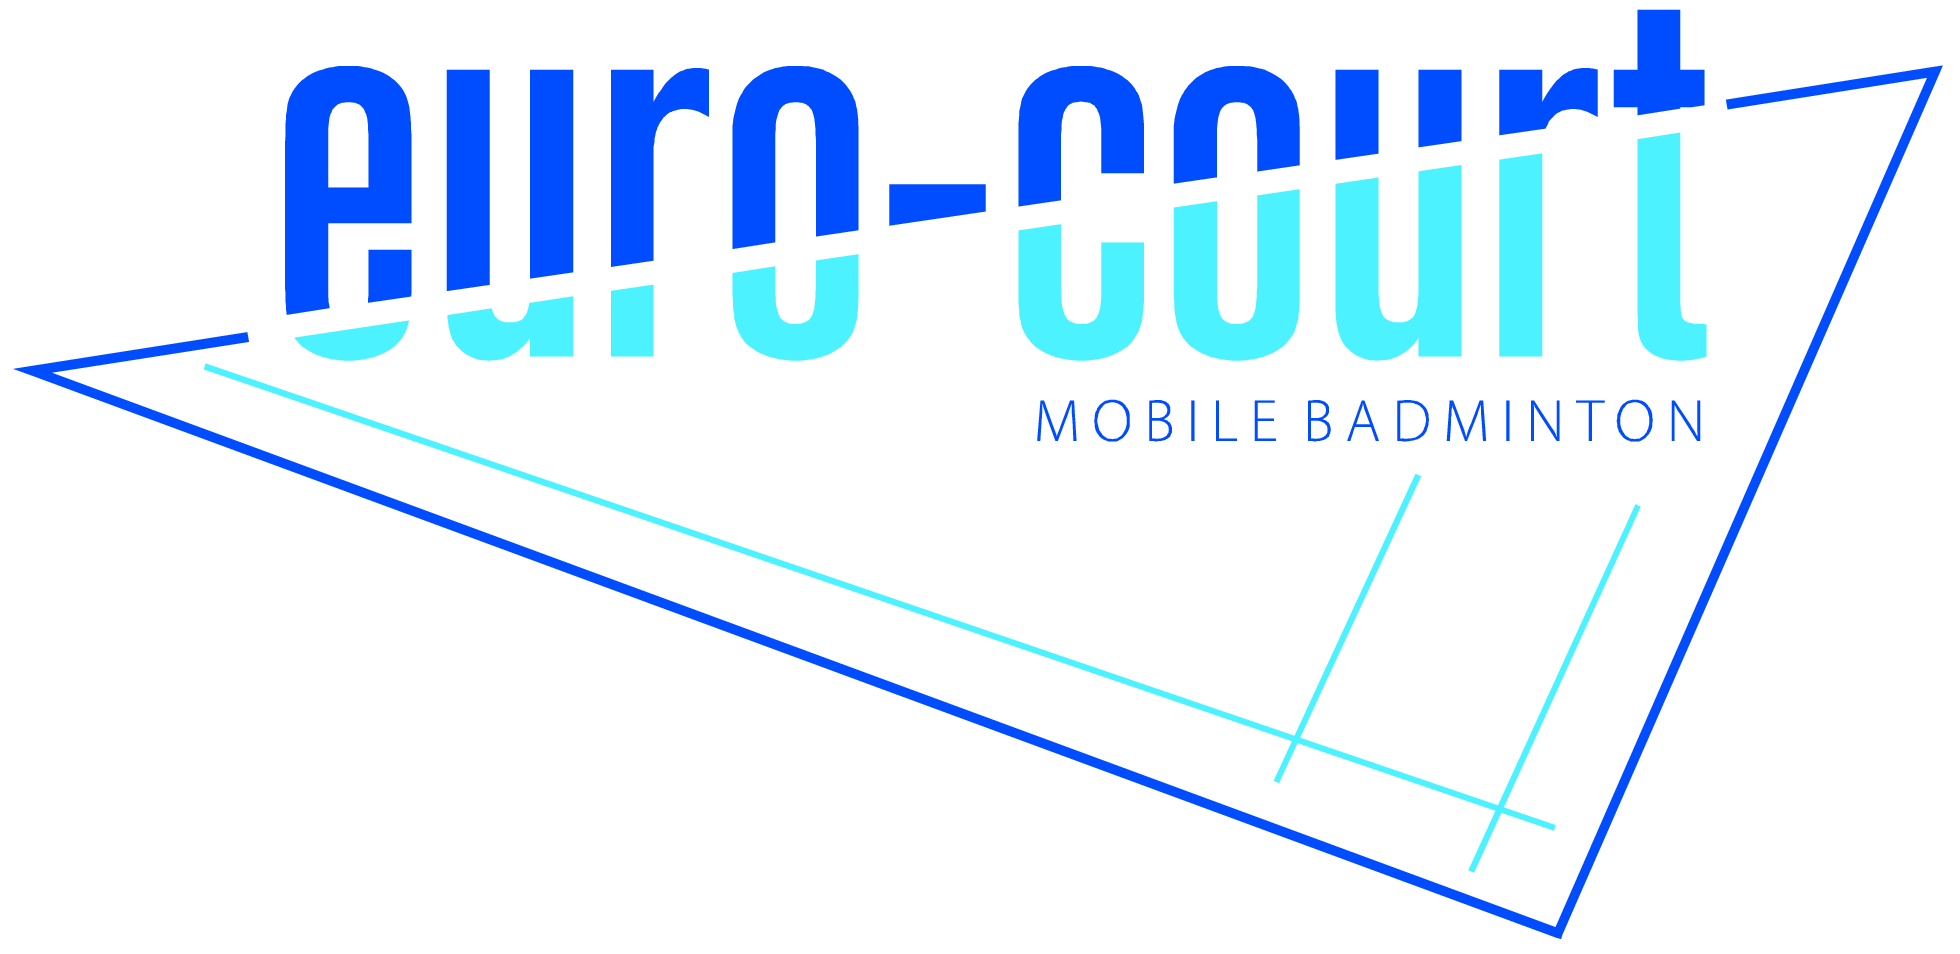 eurocourt original logo